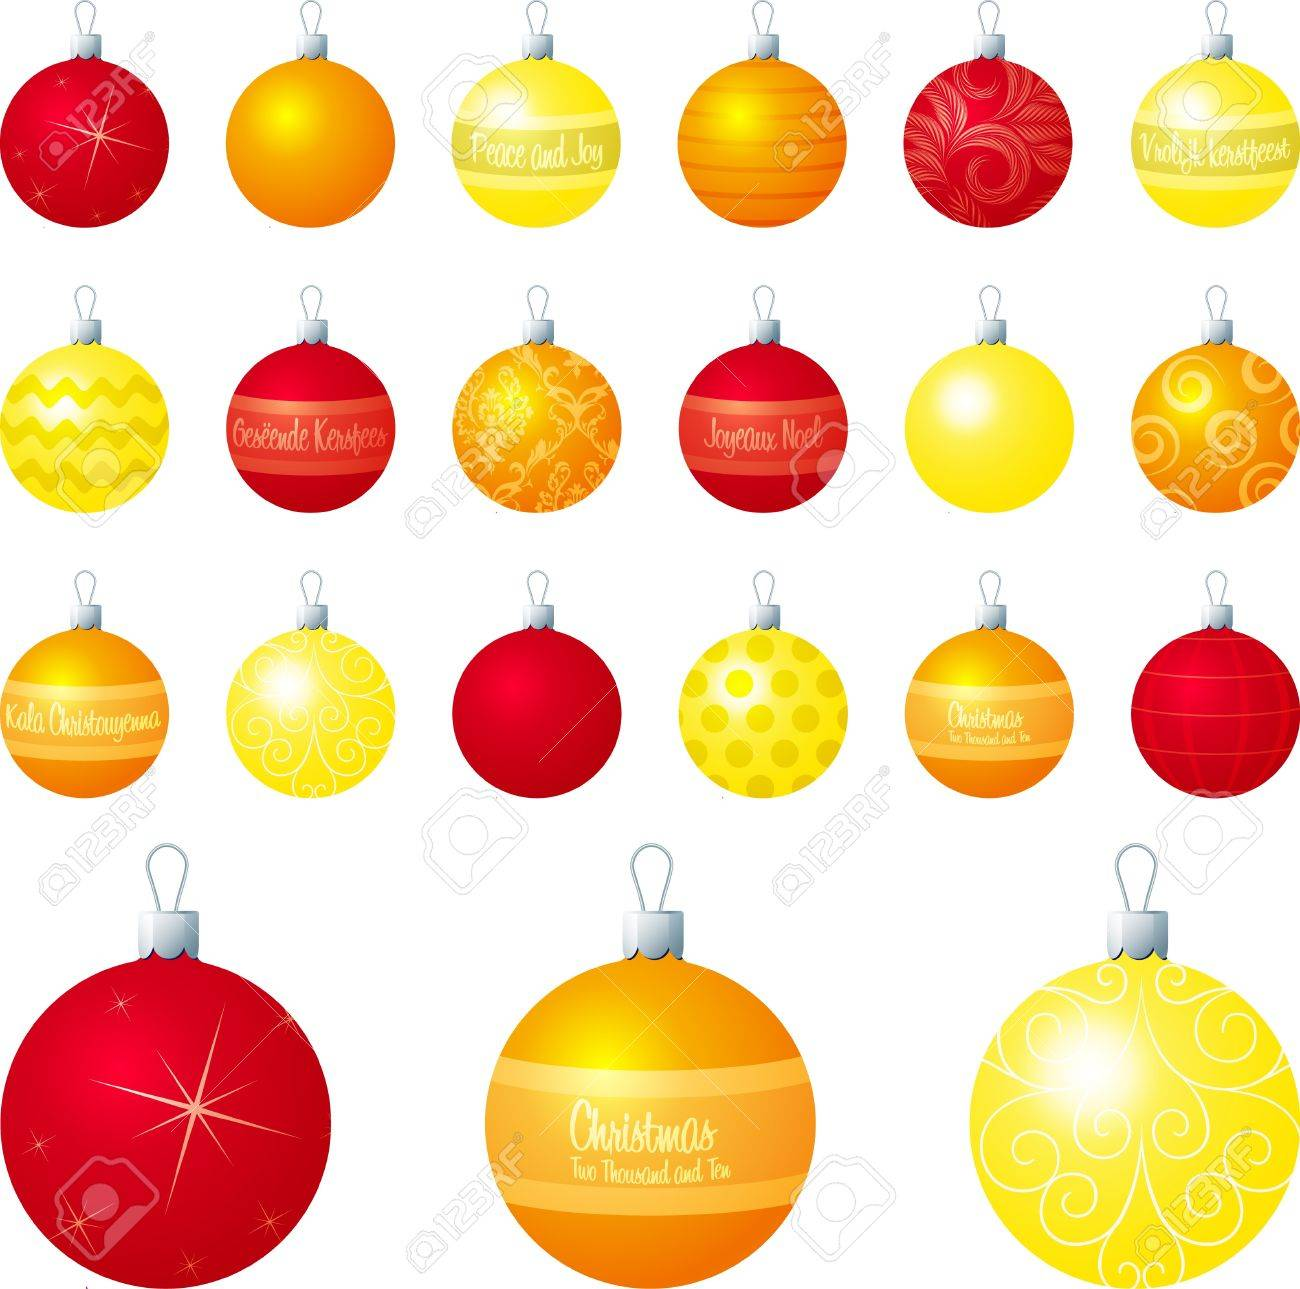 Gelbe Christbaumkugeln.Stock Photo